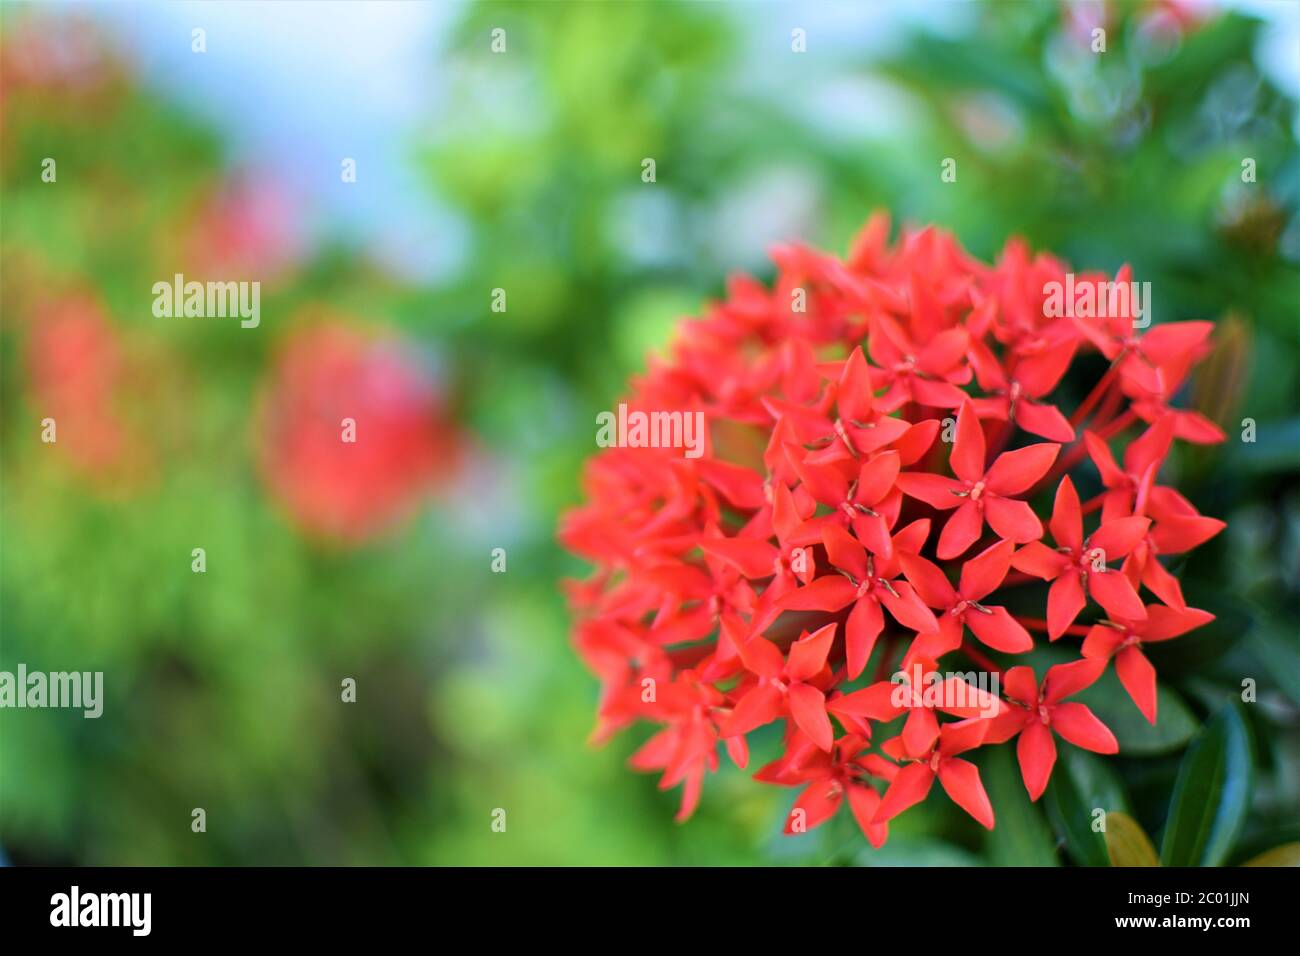 Santan High Resolution Stock Photography and Images - Alamy